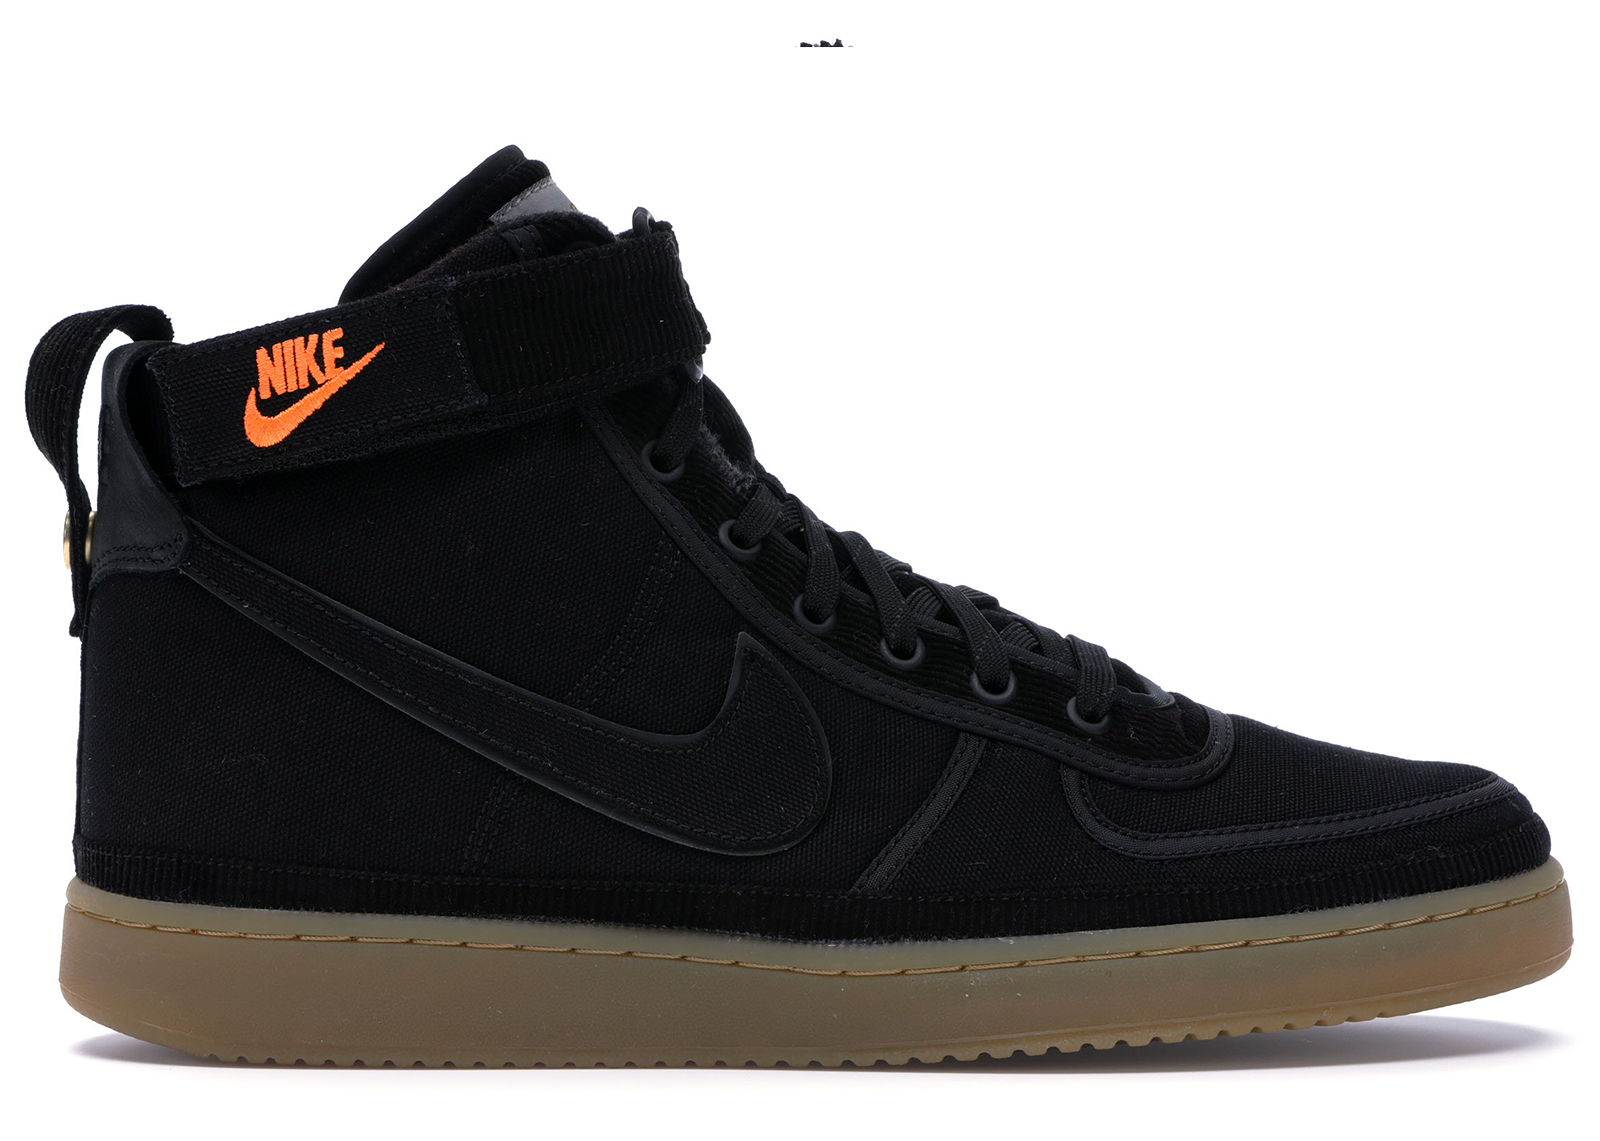 Nike Vandal High Supreme X Carhartt WIP Black Gum Brown Mens Shoes AV4115-001